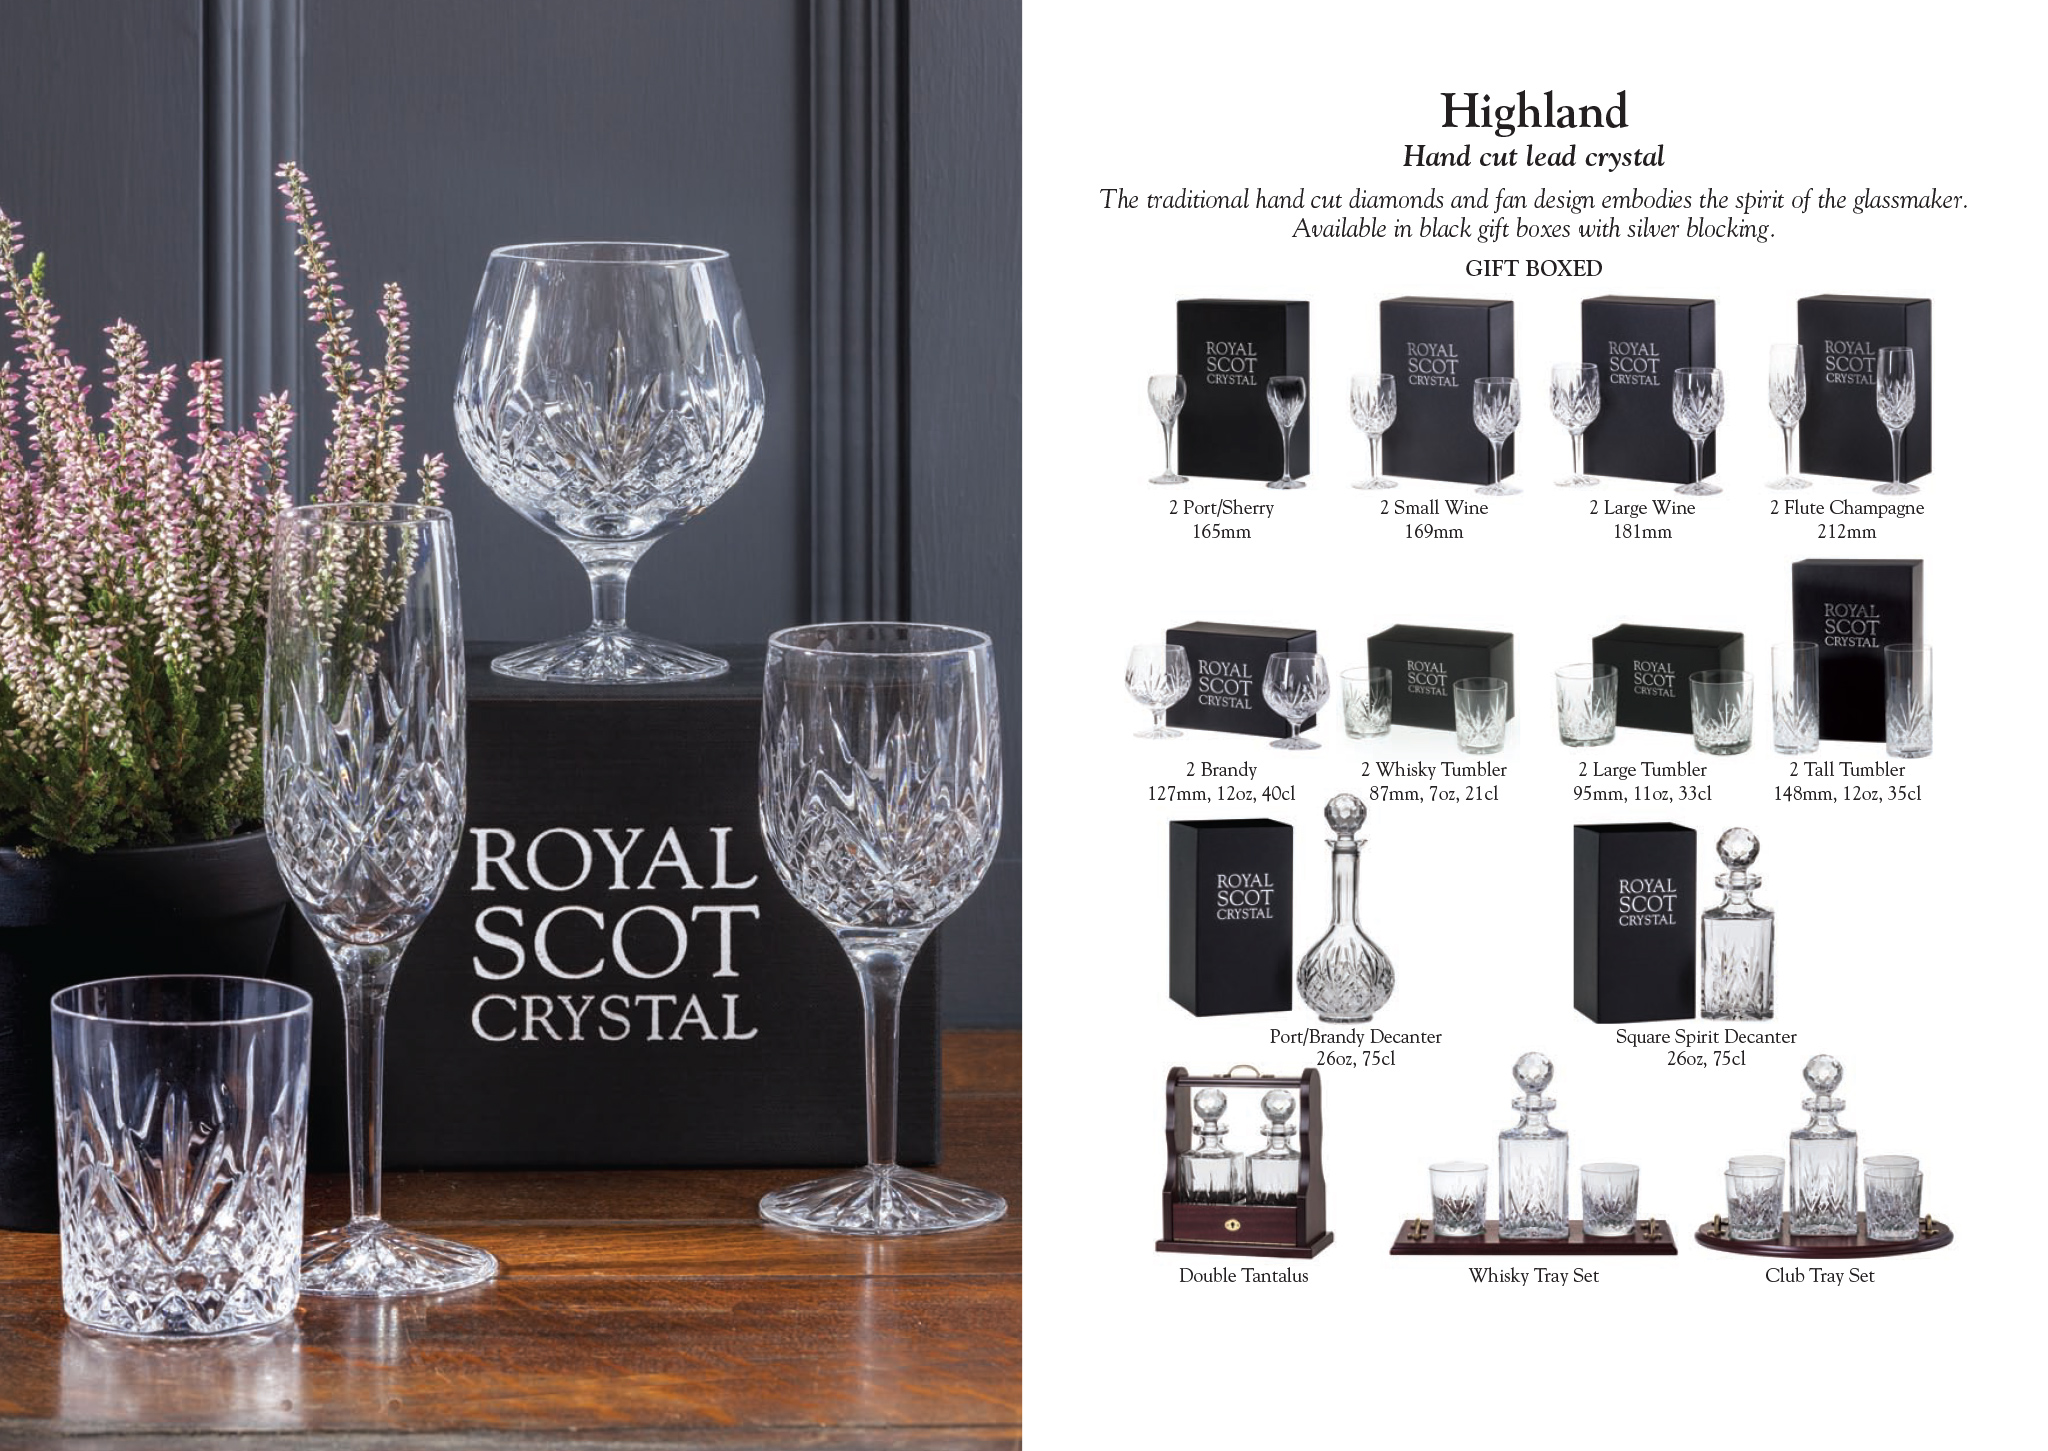 royal buckingham royal scot crystal highland. Black Bedroom Furniture Sets. Home Design Ideas